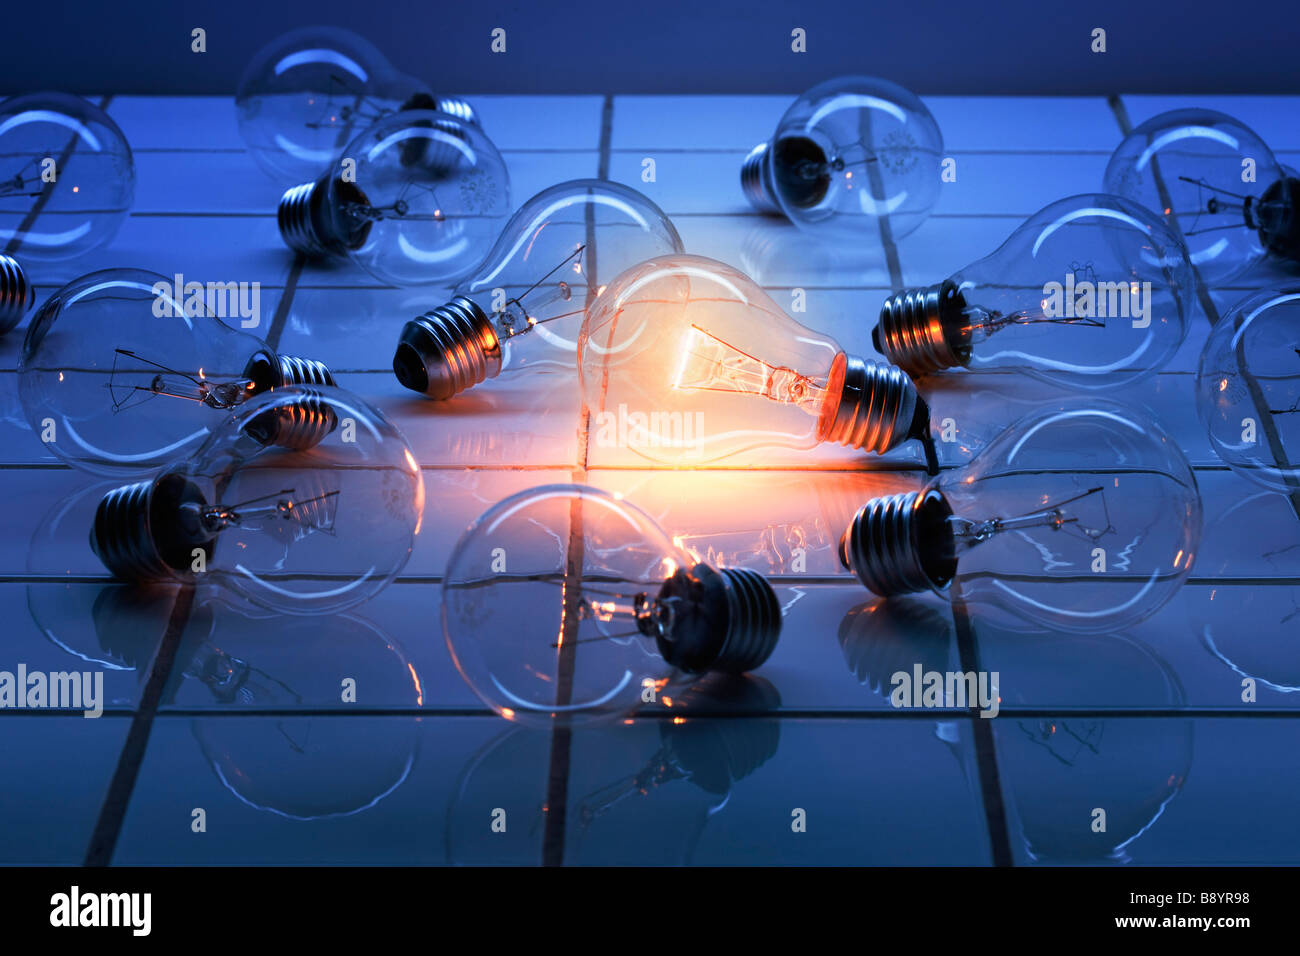 several light bulbs lying on a tiled floor, one of them lucent - Stock Image